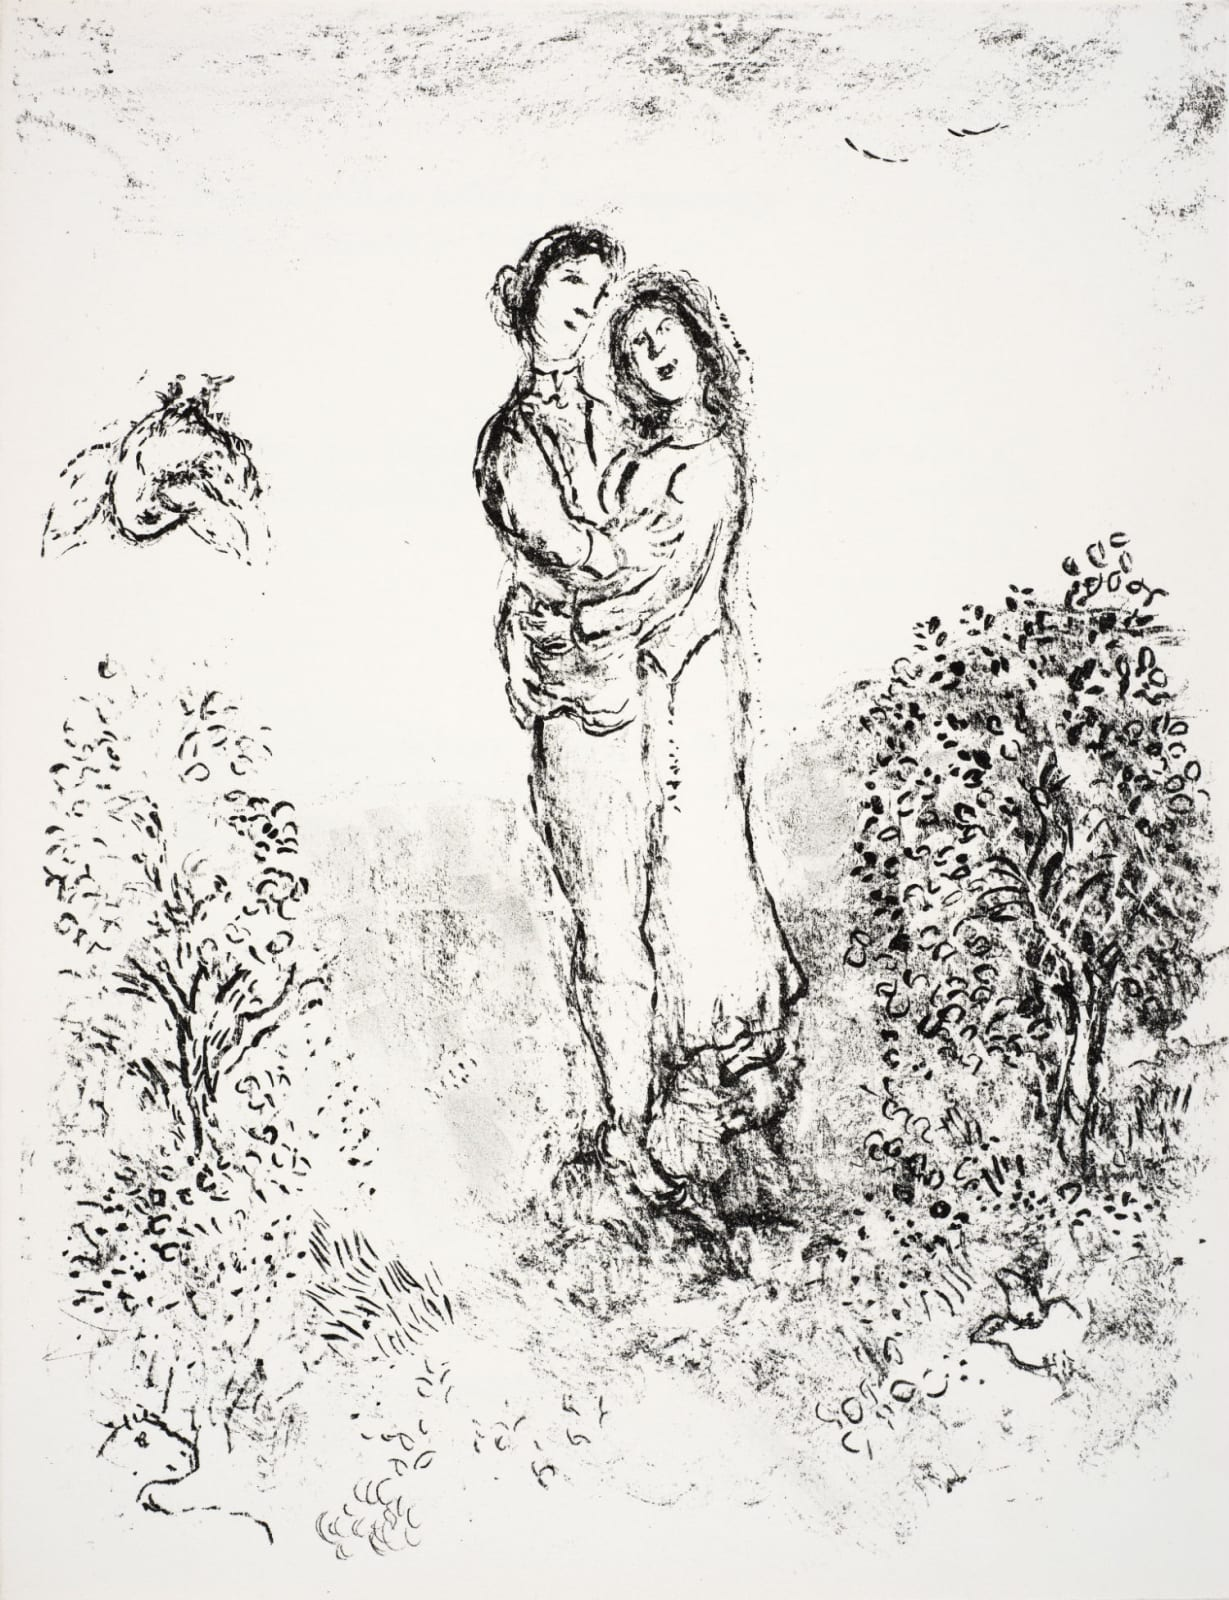 Marc Chagall (1887-1985) Ferdinand and Miranda embrace (Series: Shakespeare The Tempest) 1975 Lithograph 42.5 x 32.5 cm Ben Uri Collection © Marc Chagall estate To see and discover more about this artist click here